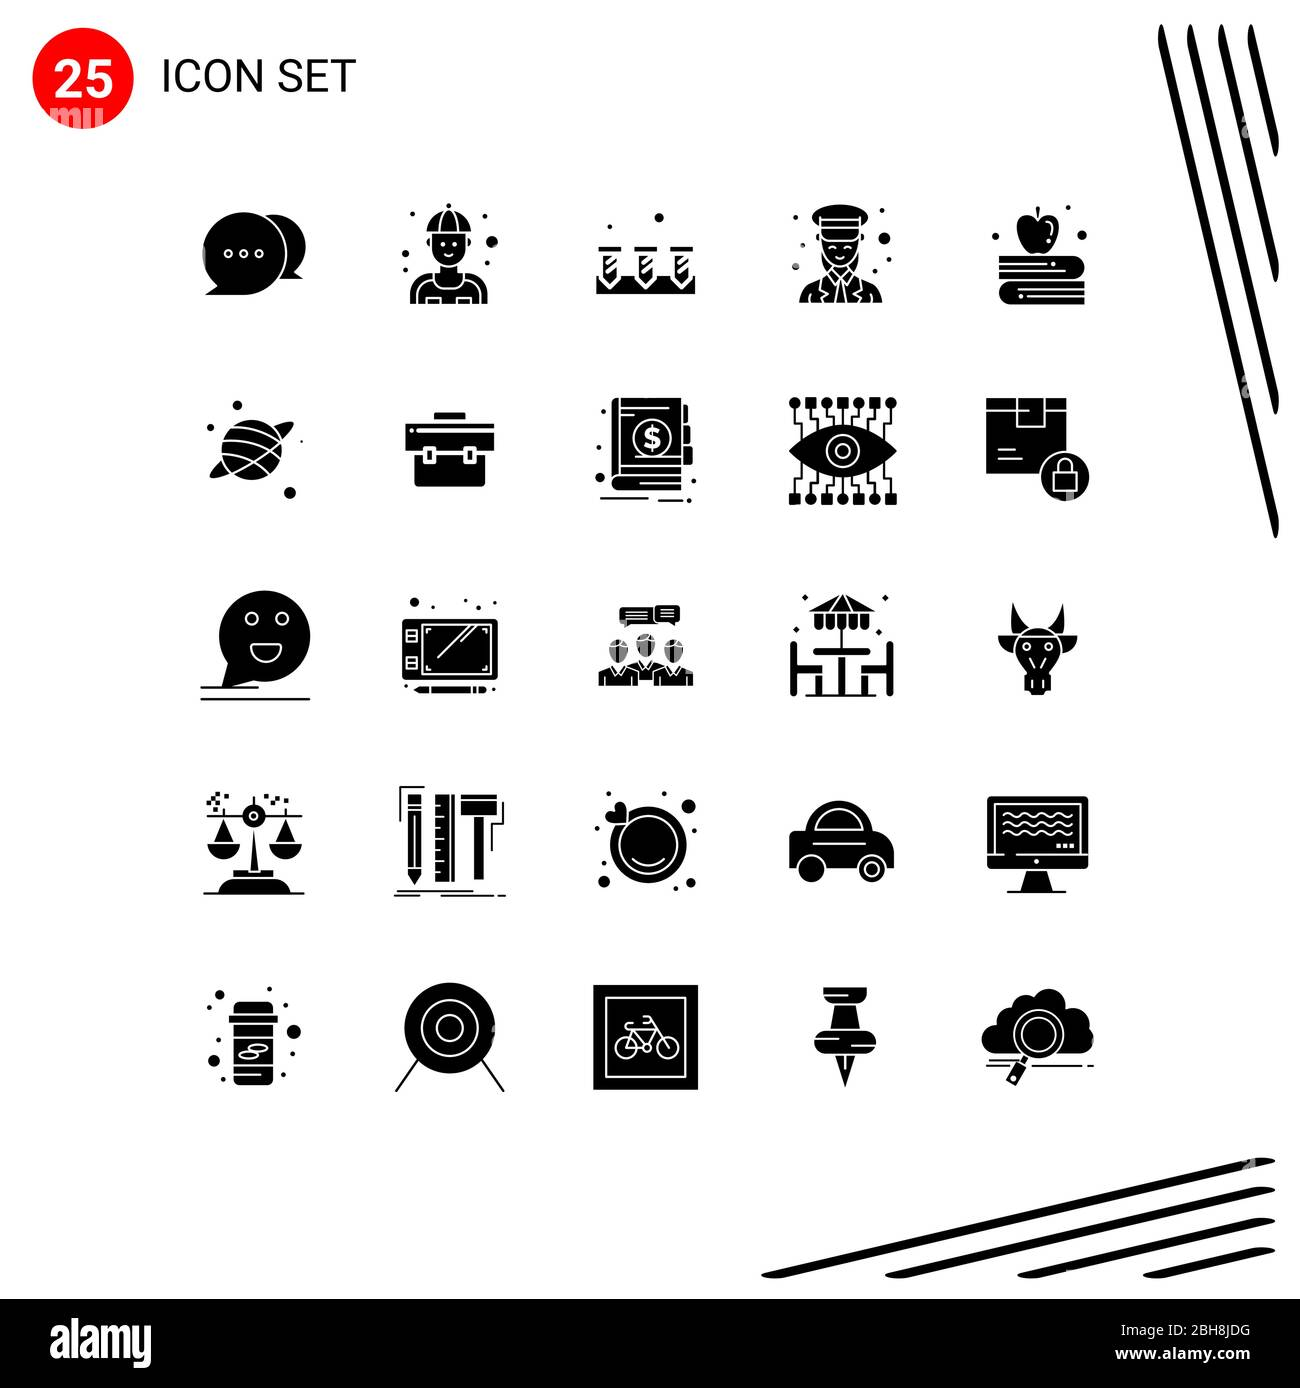 Set Of 25 Commercial Solid Glyphs Pack For Apple On Book Women Construction Police Guard Editable Vector Design Elements Stock Vector Image Art Alamy